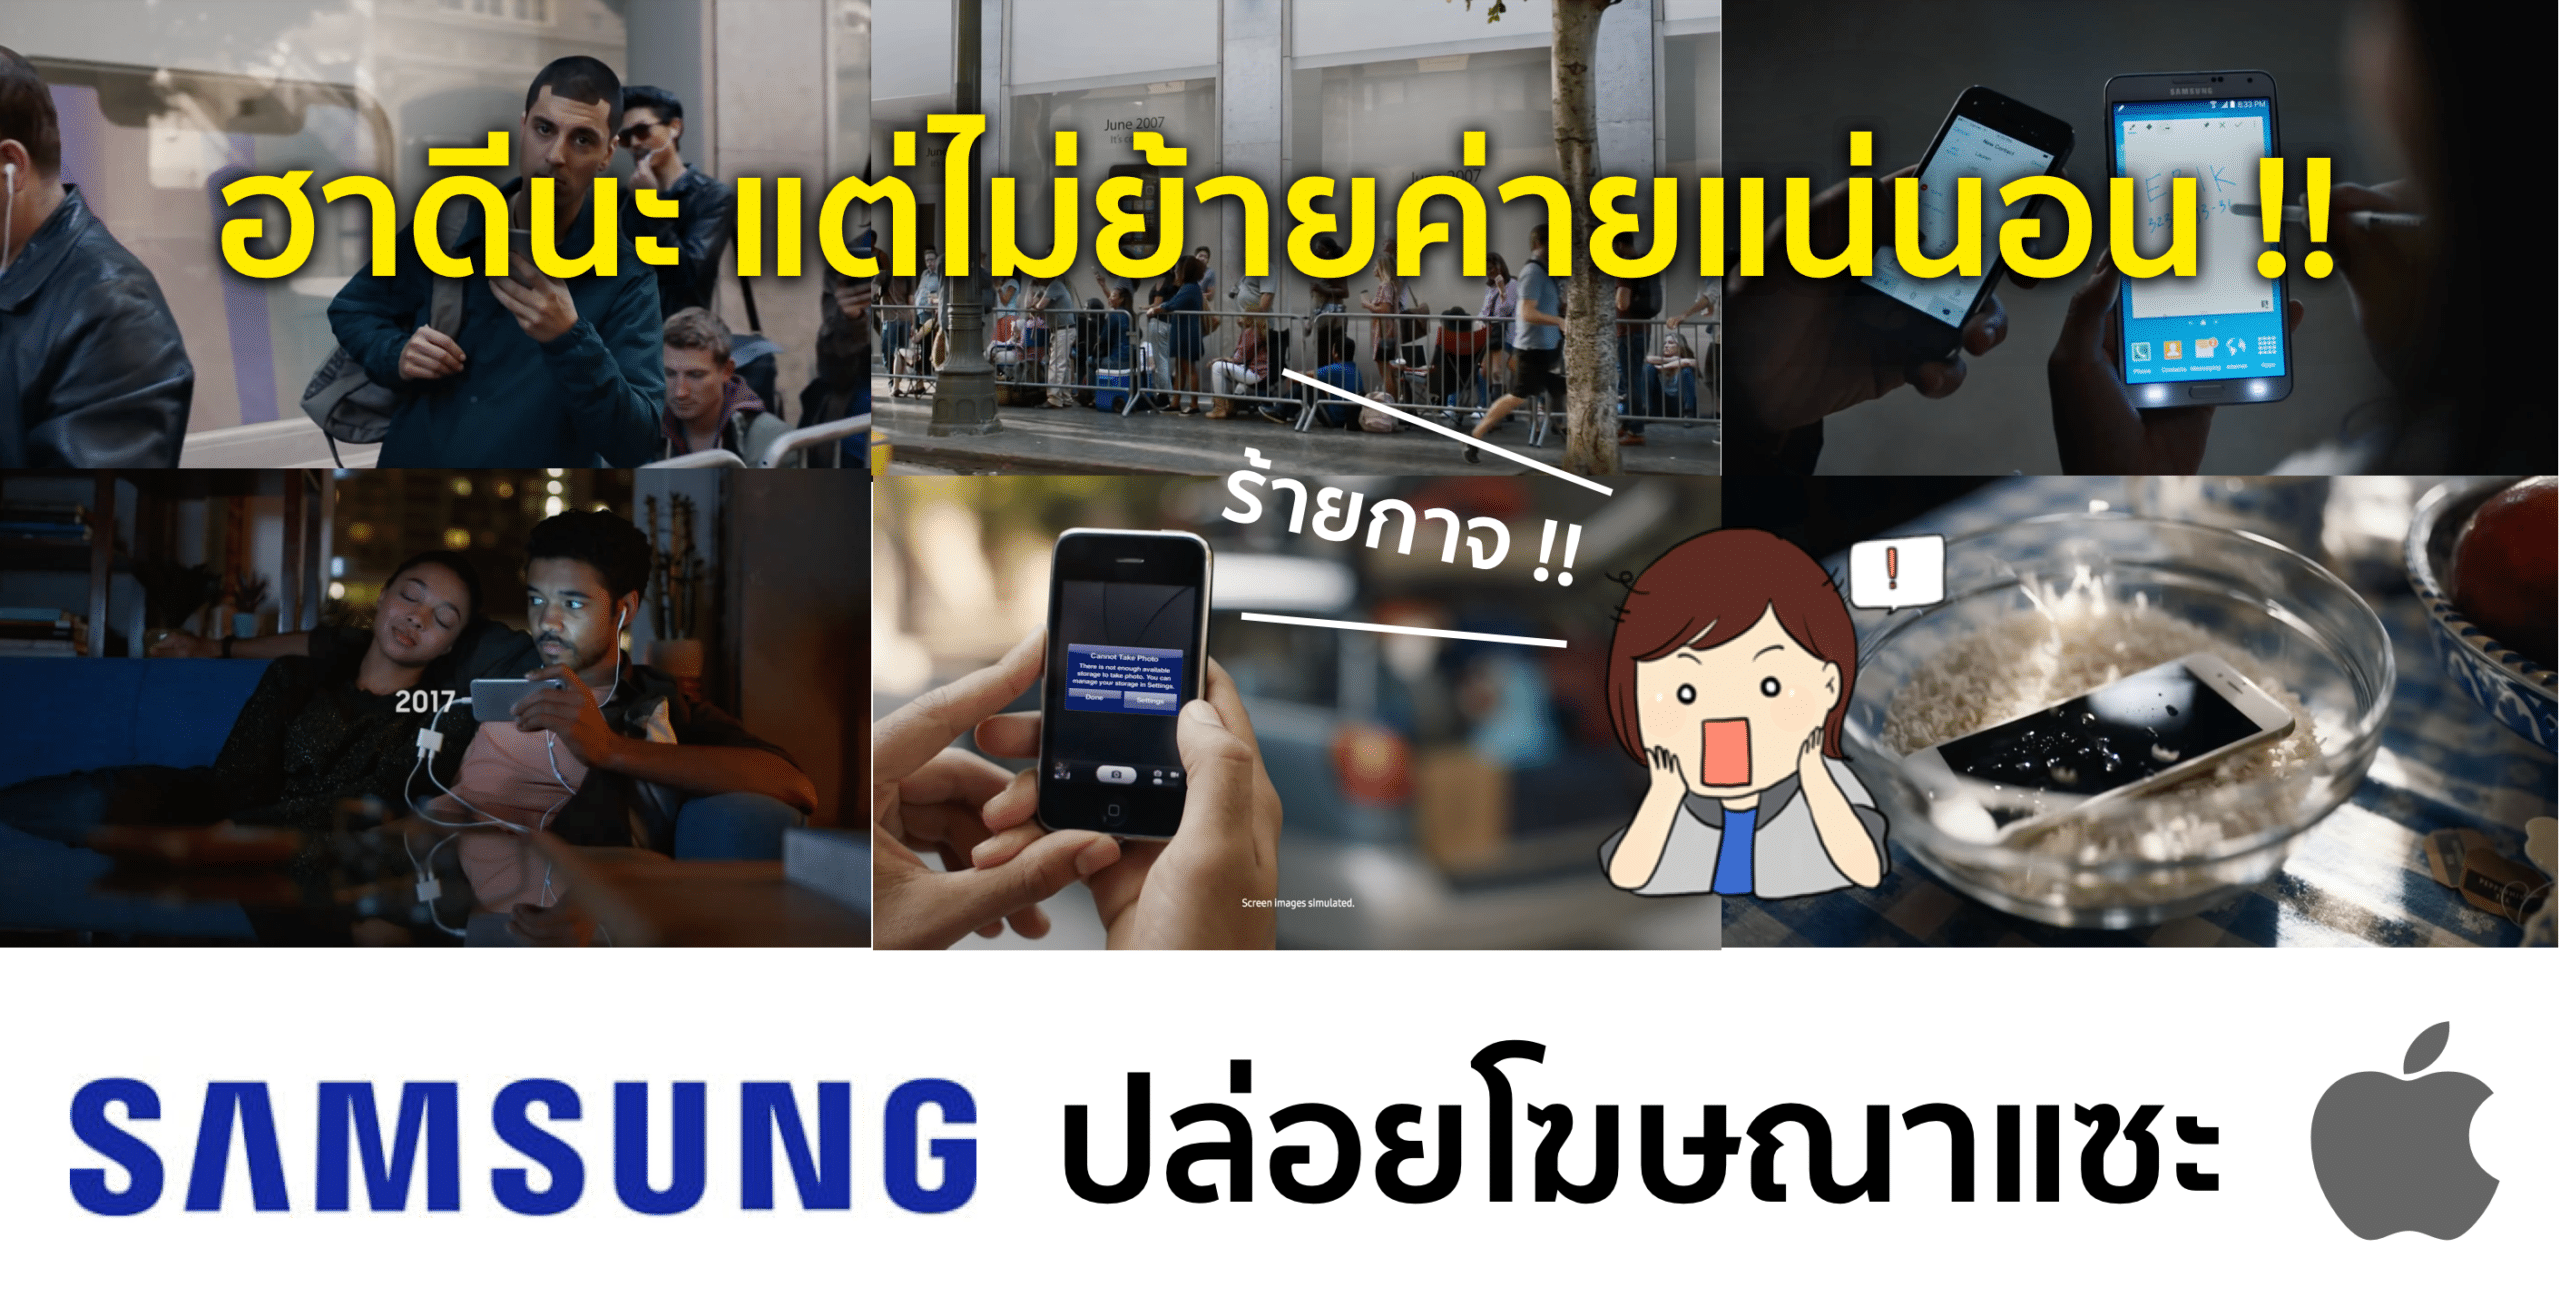 why-samsungs-new-ad-mocking-apple-is-an-epic-fail